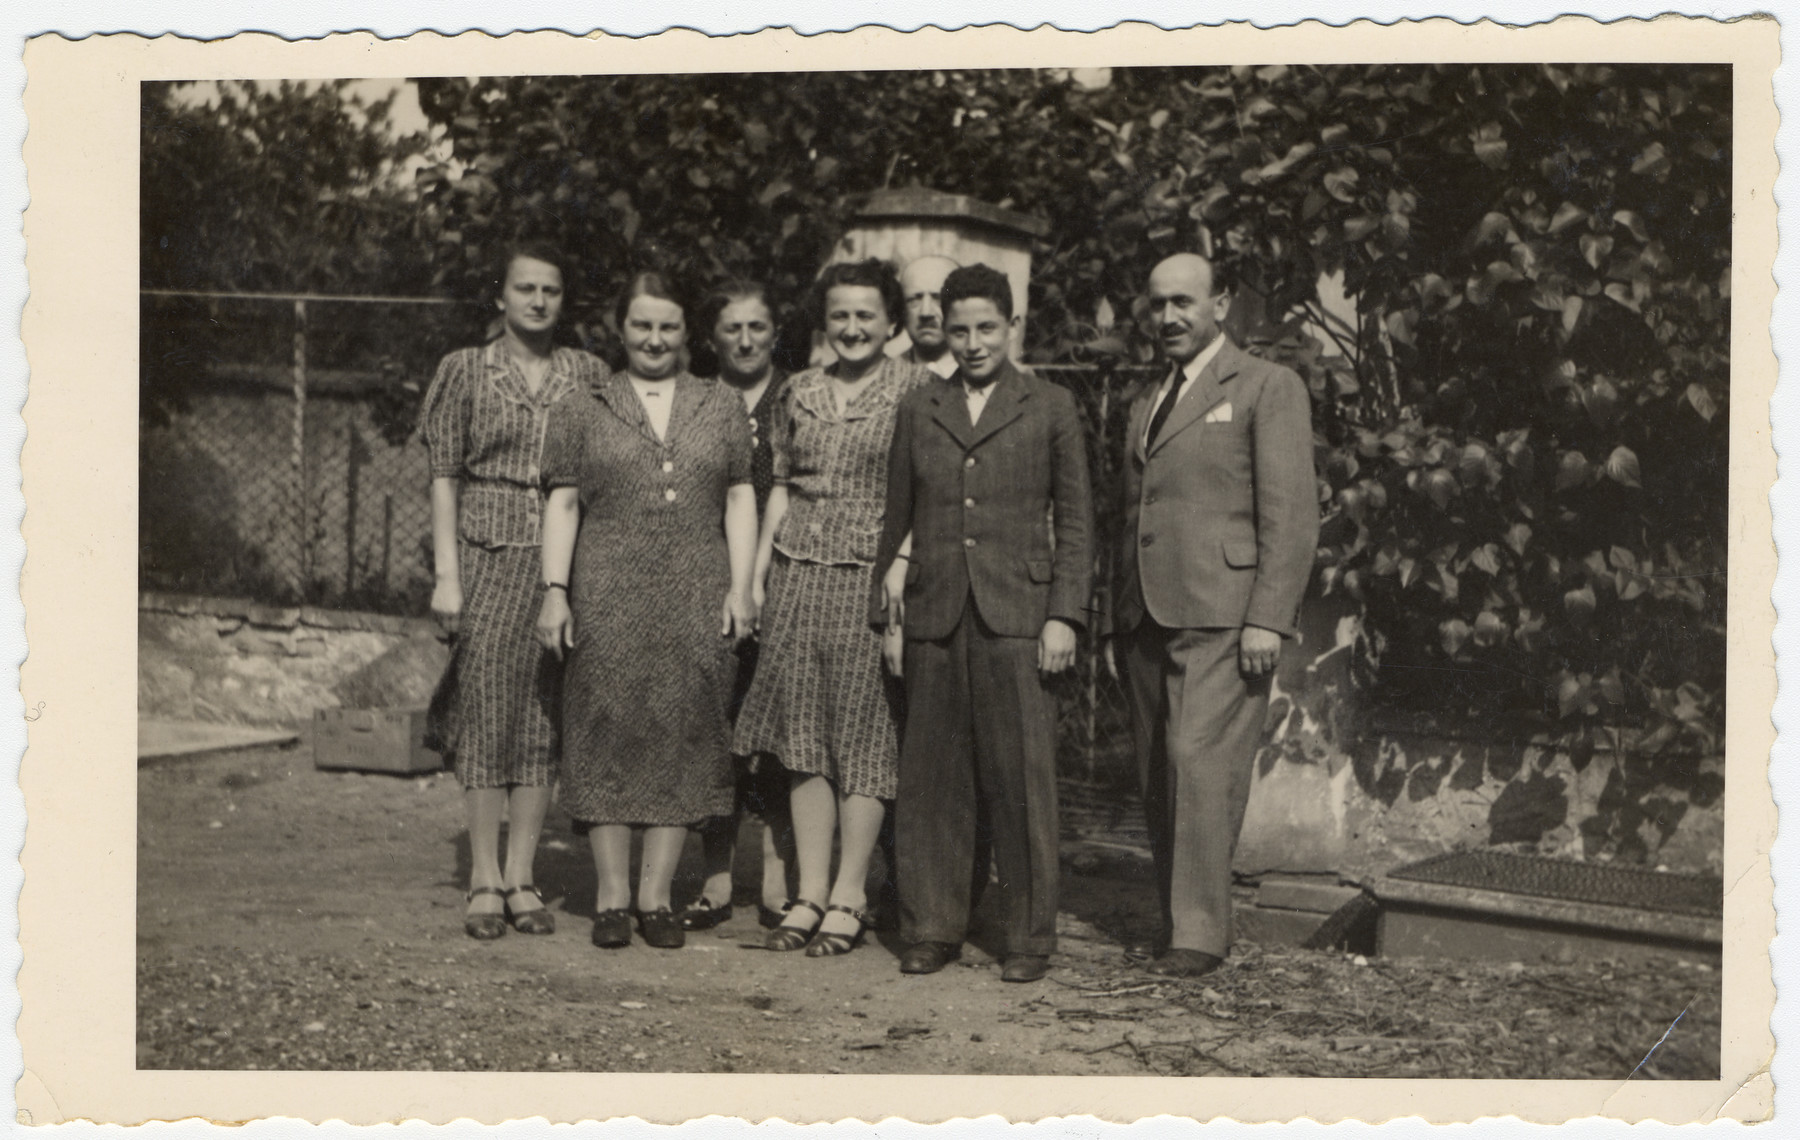 Prewar photograph of the Loewy family in Czechoslovakia and sent to Marianne (Mimi) Loewy in the United States.  Pictured are Irma Treichlinger, Irena Loewy, her cousin Pepa Lorenc and Max Treichlinger (Irma's brother-in-law).  Behind them are Magda Lowey and her parents Guste and Julius Loewy.